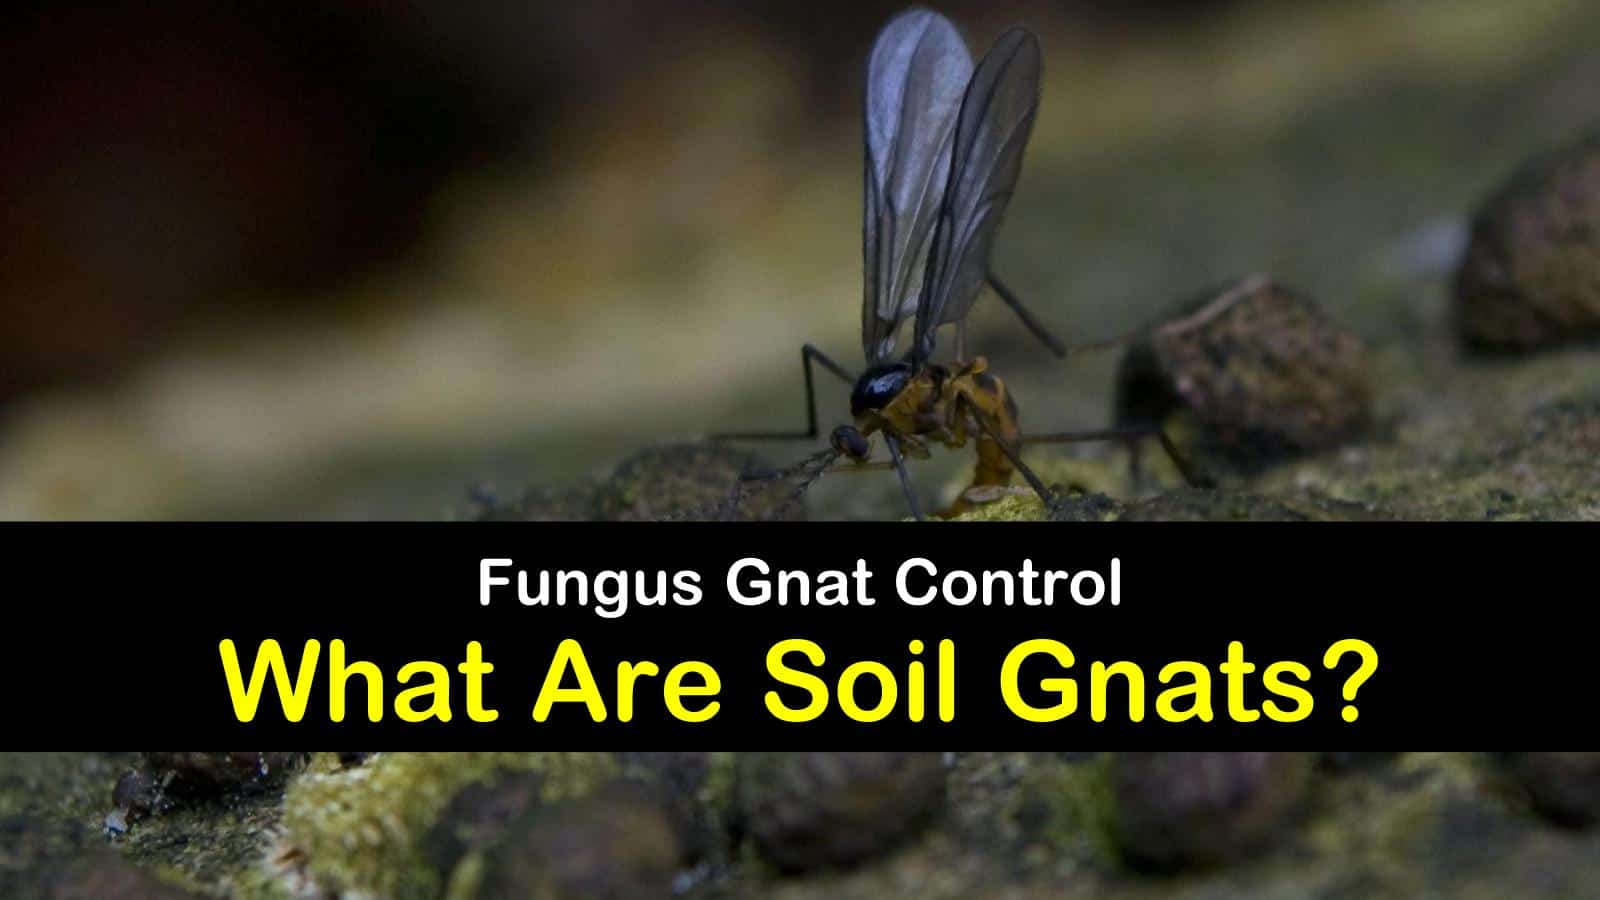 soil gnats titleimg1